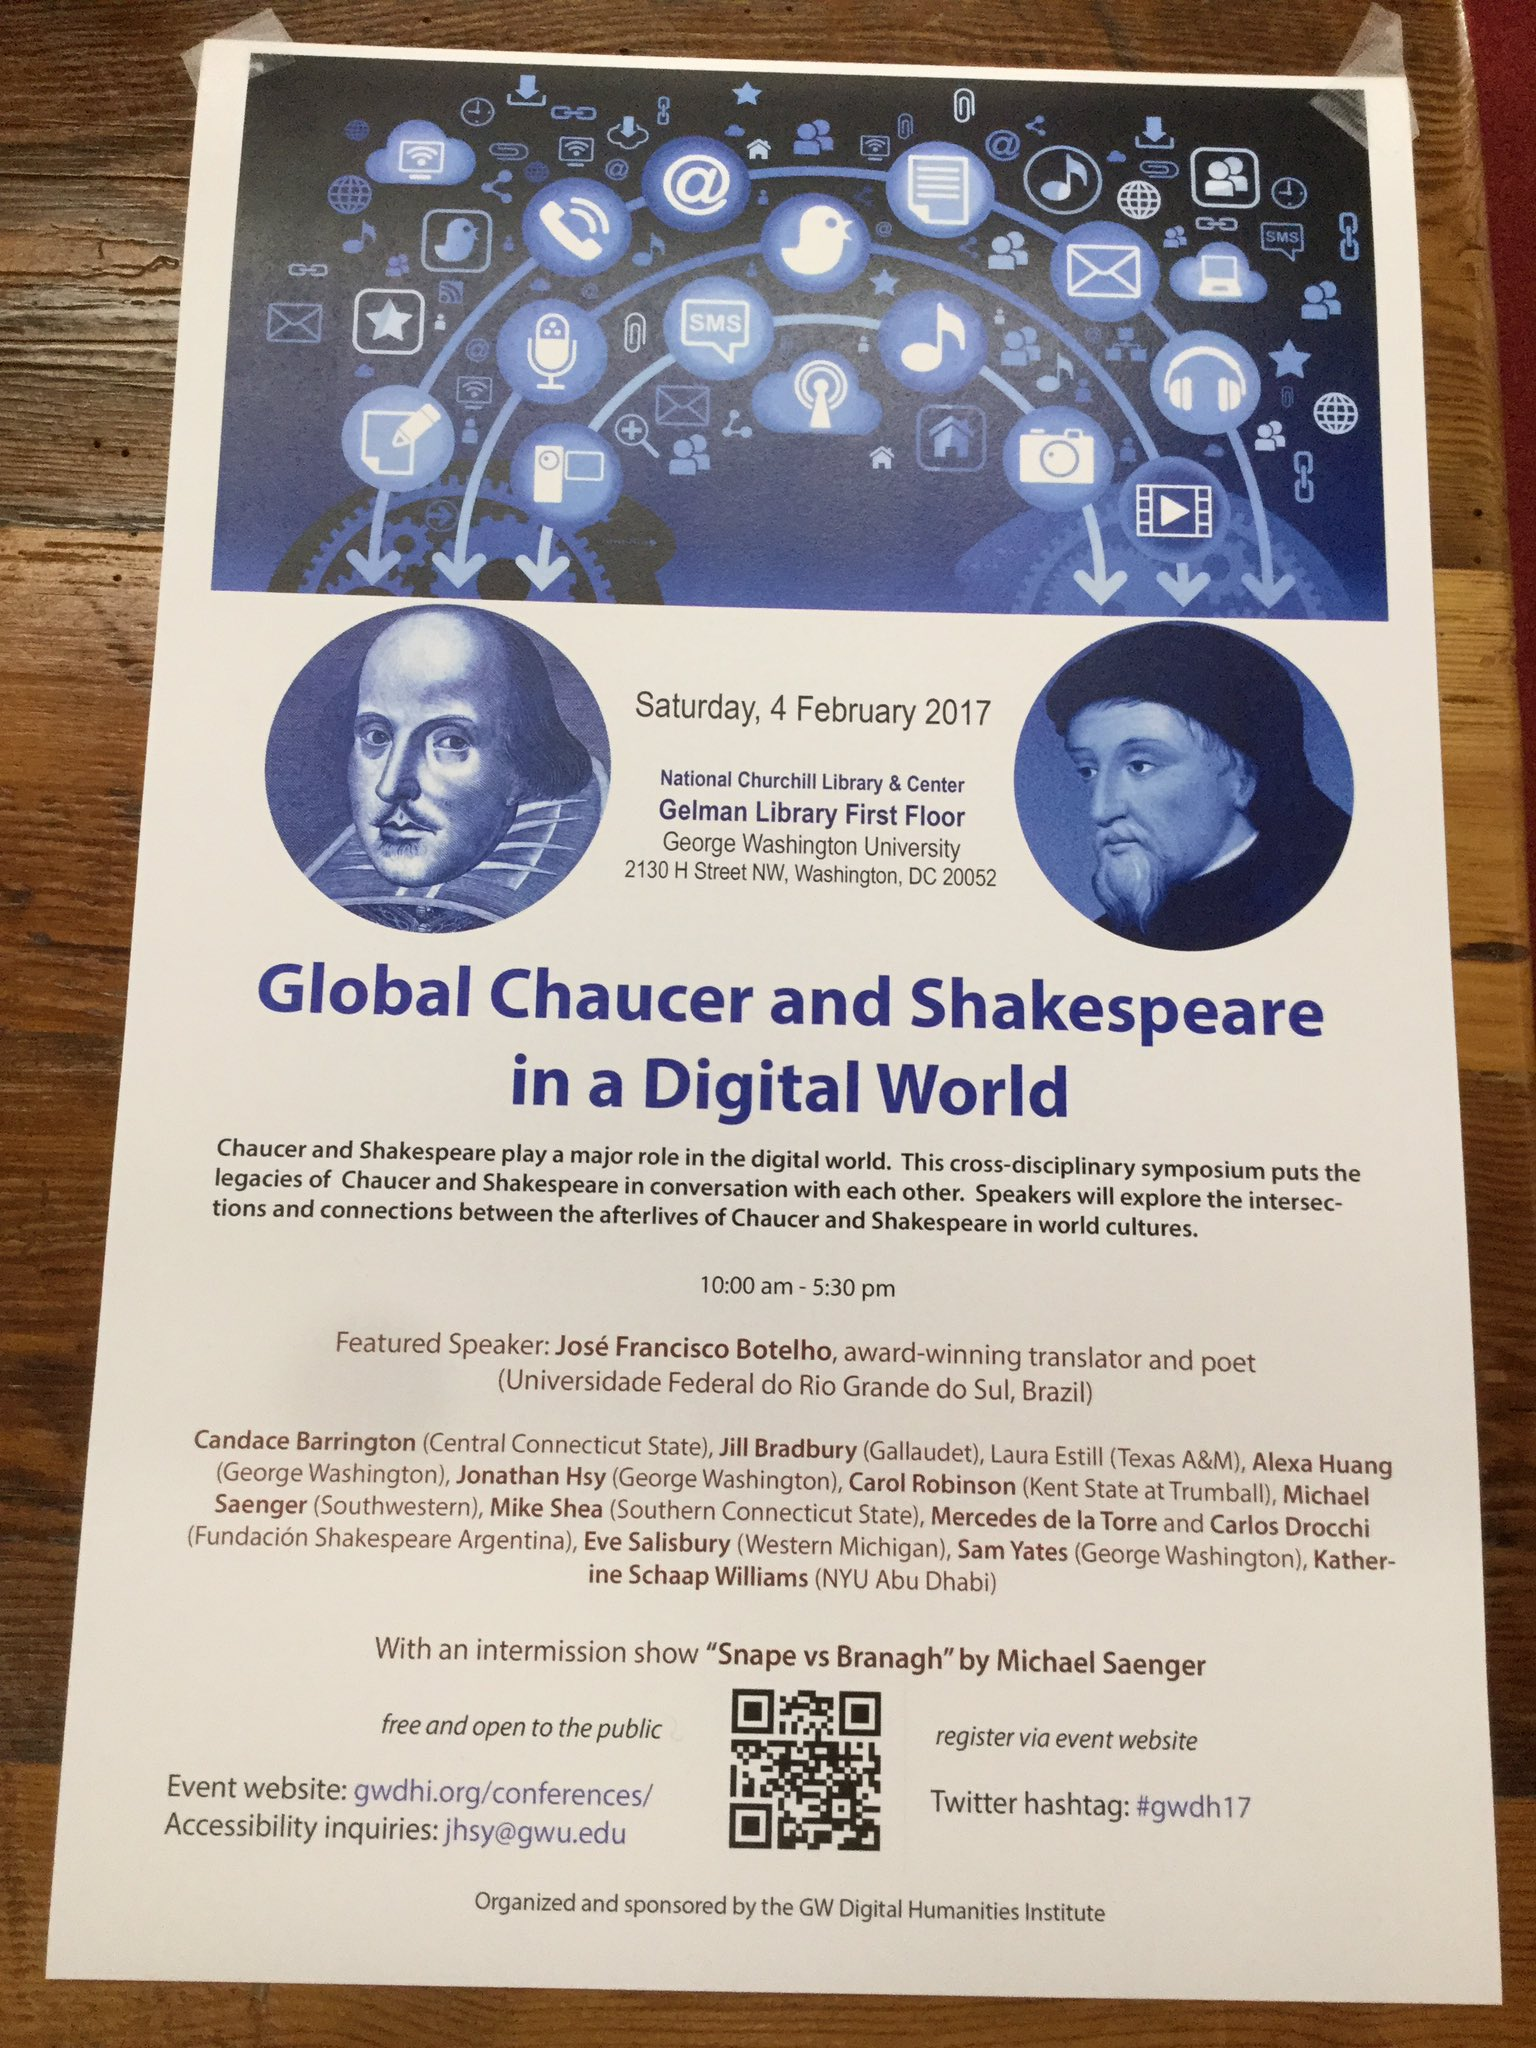 Thumbnail for #GWDH17: Global Chaucer and Shakespeare in a Digital World